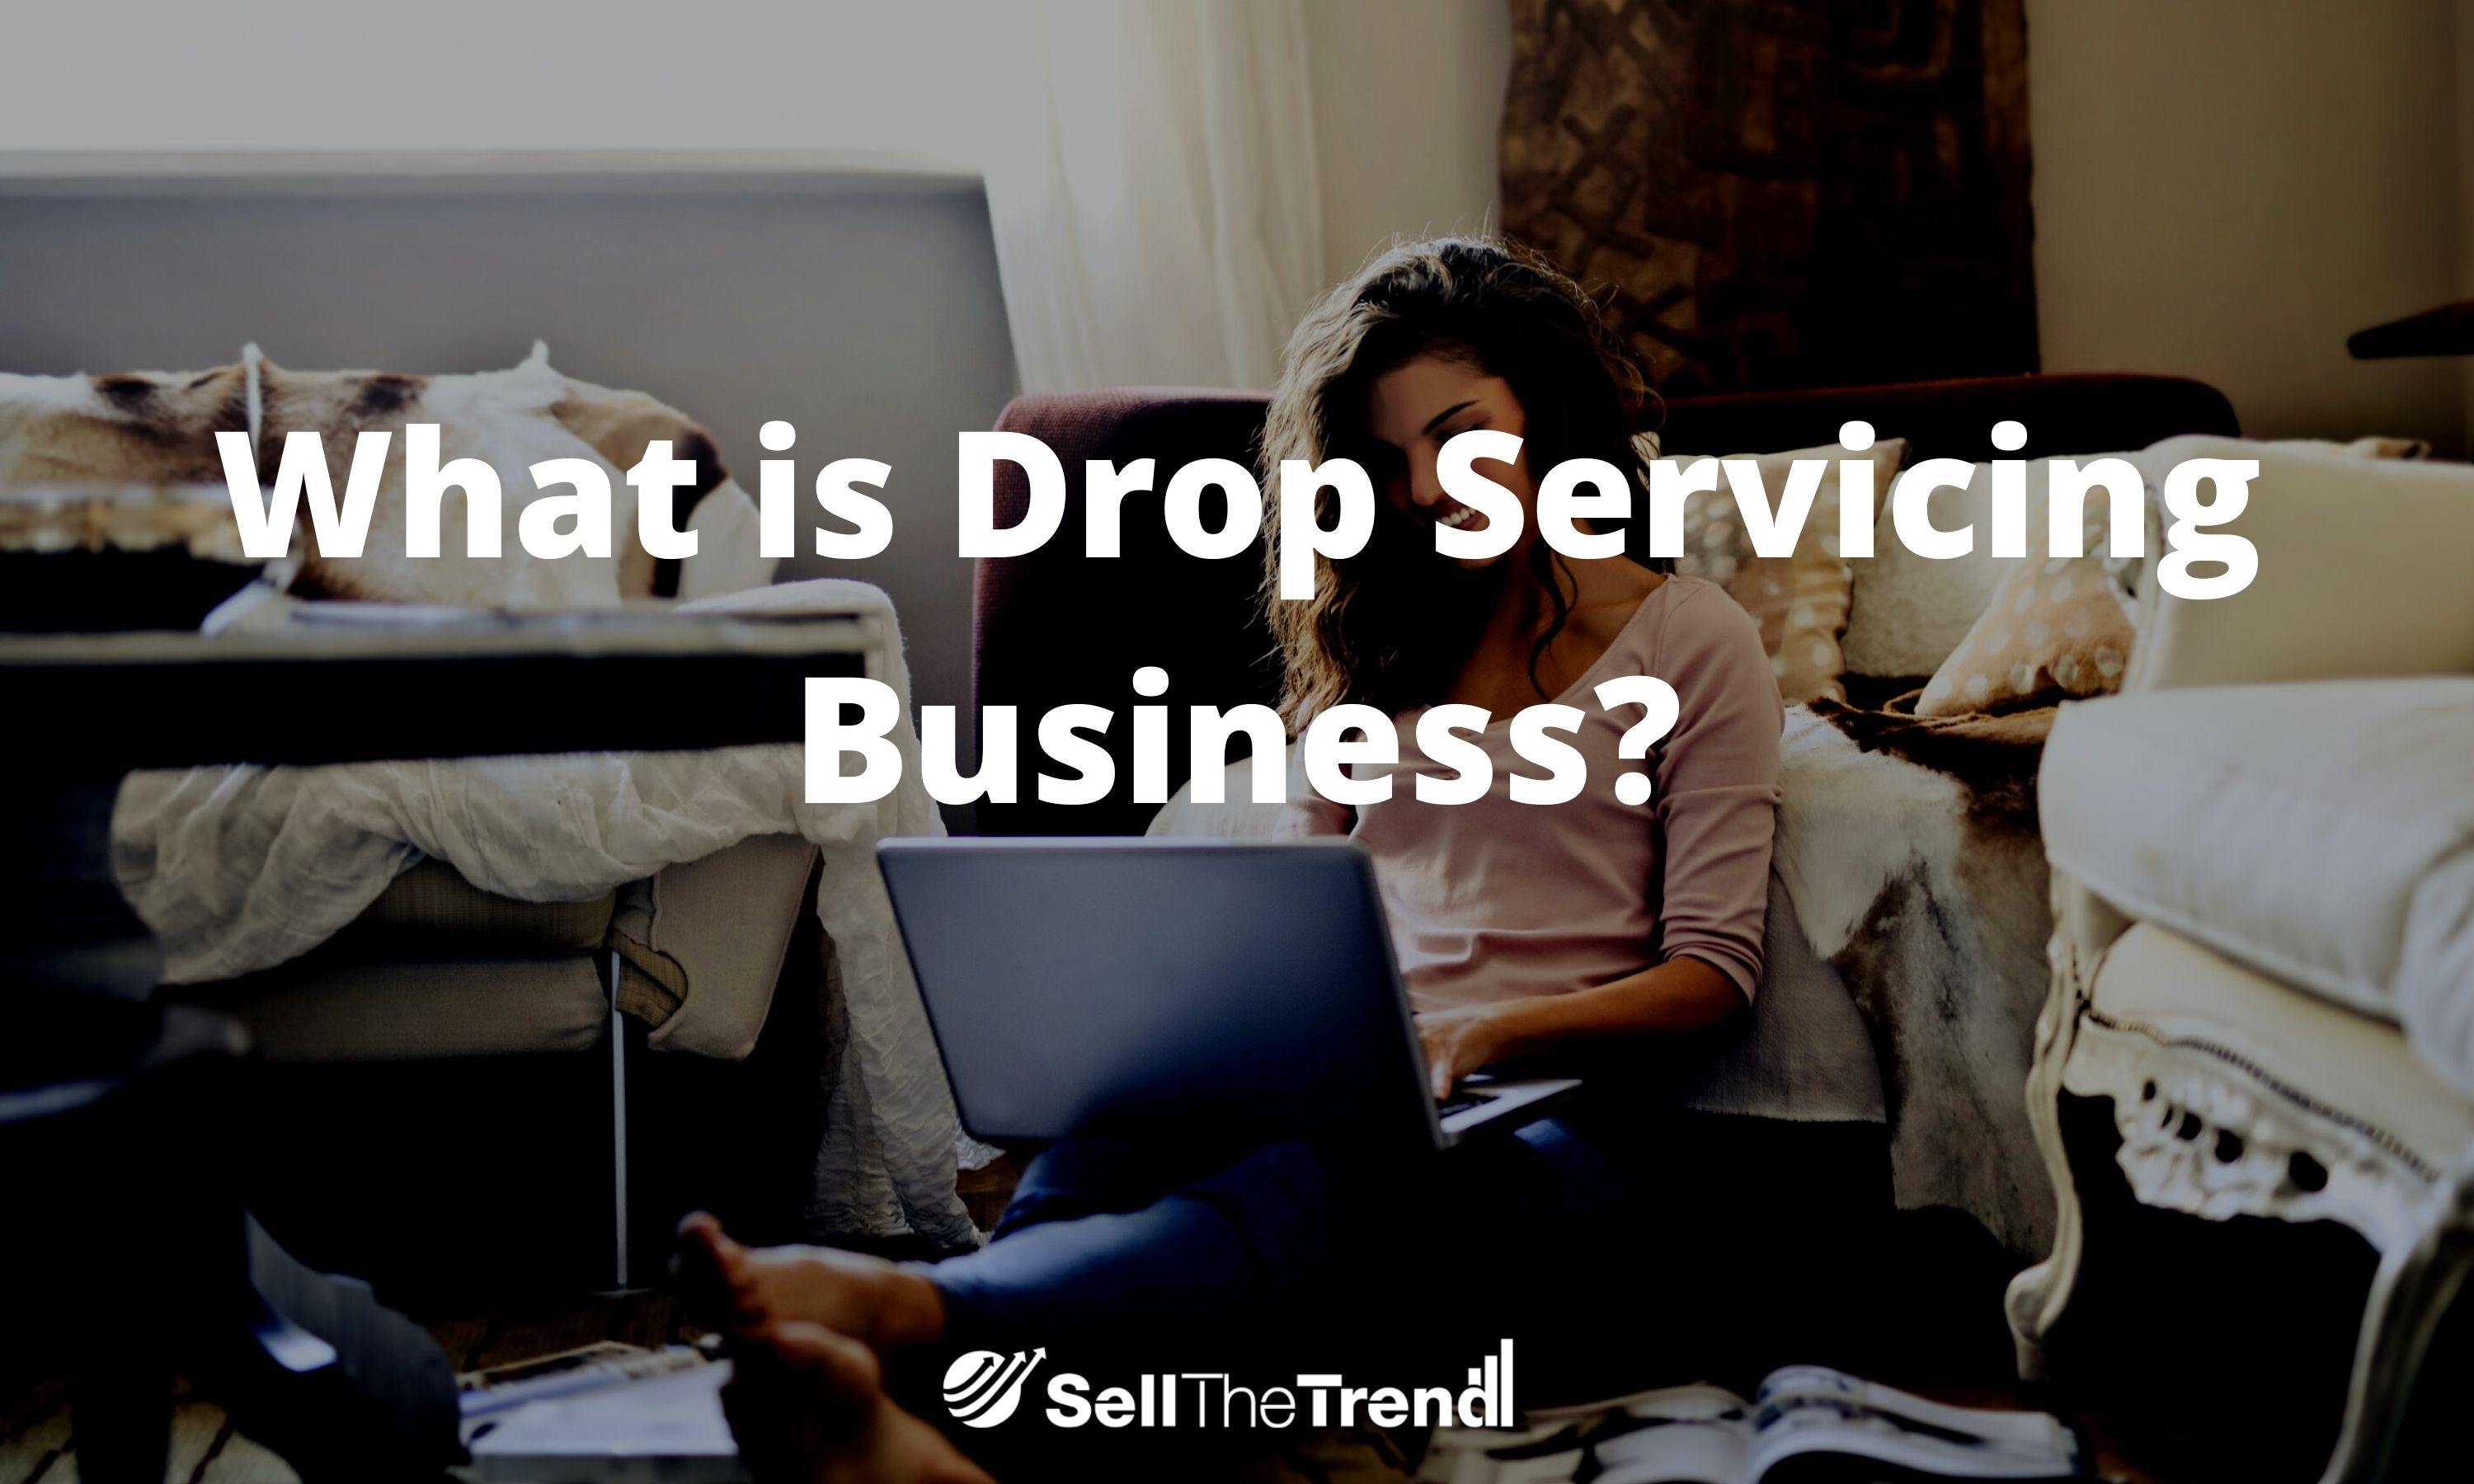 What is drop servicing business?